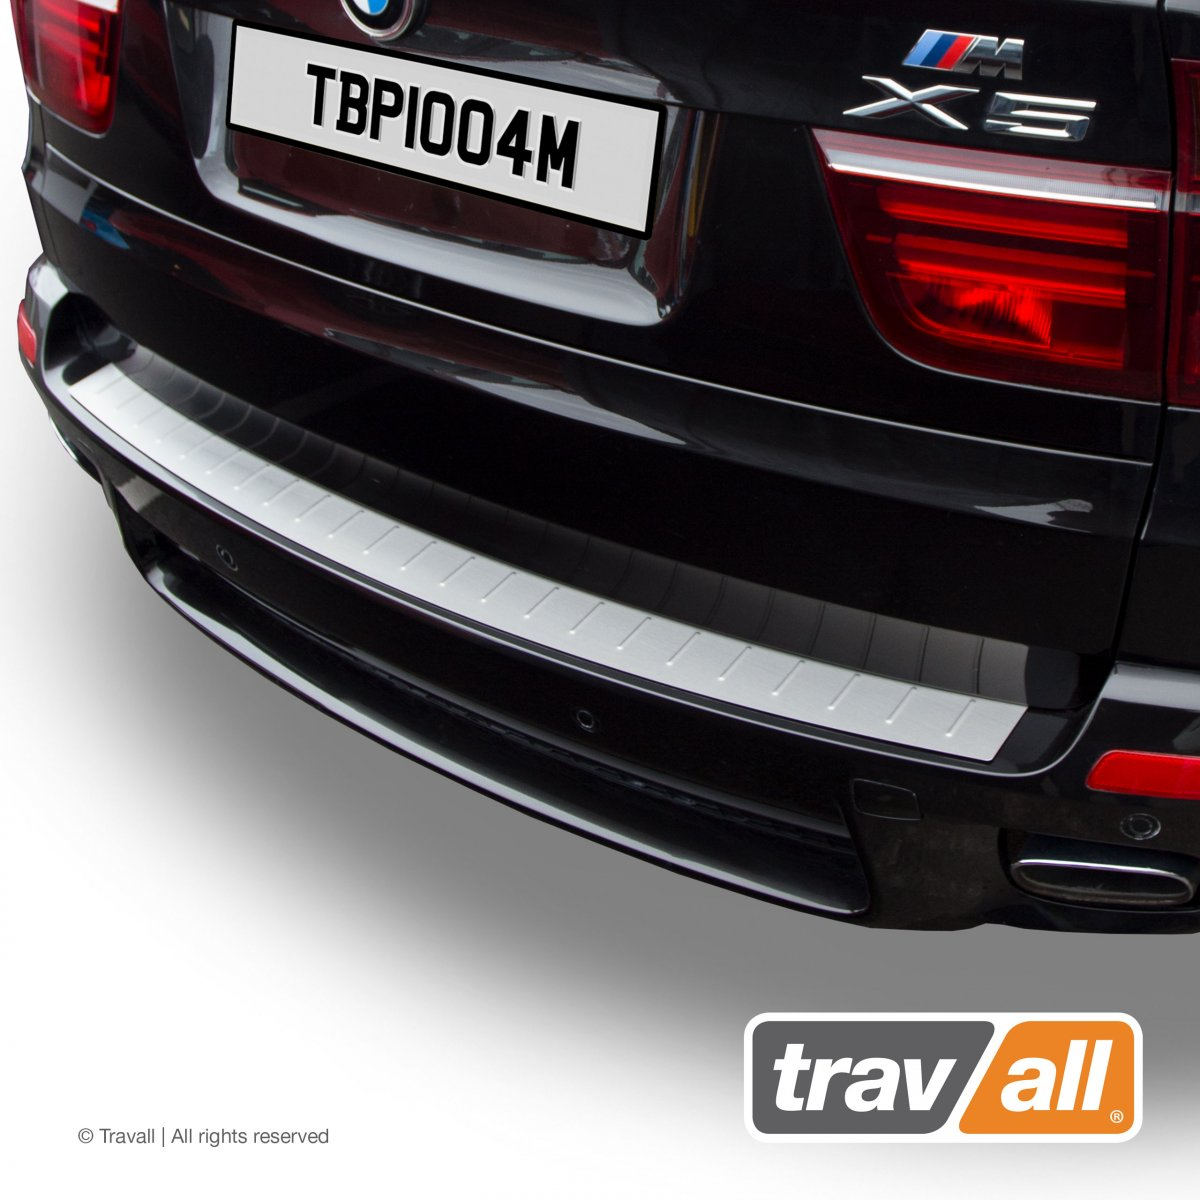 Travall® PROTECTOR-Stainless Steel for BMW X5 (2006-2013)